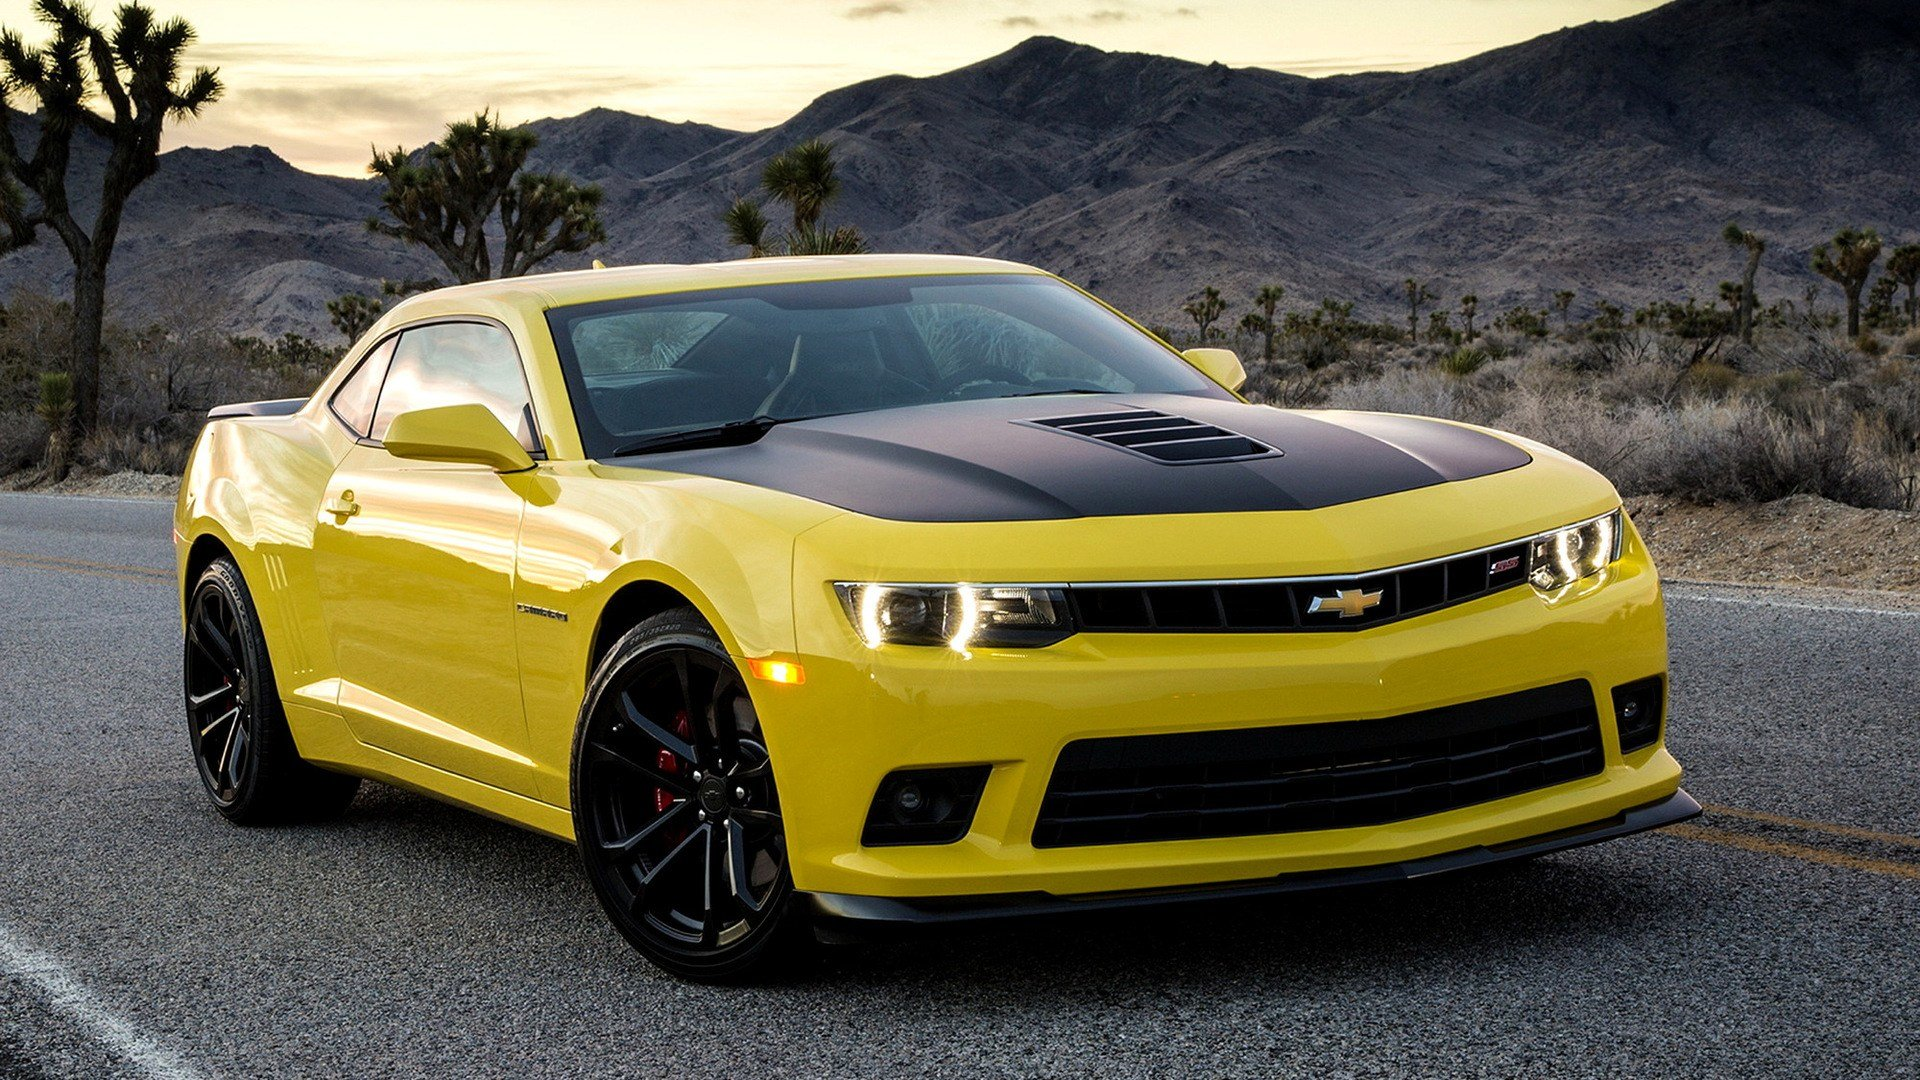 New Chevrolet Camaro Ss 1Le 2014 Wallpapers And Hd Images On This Month